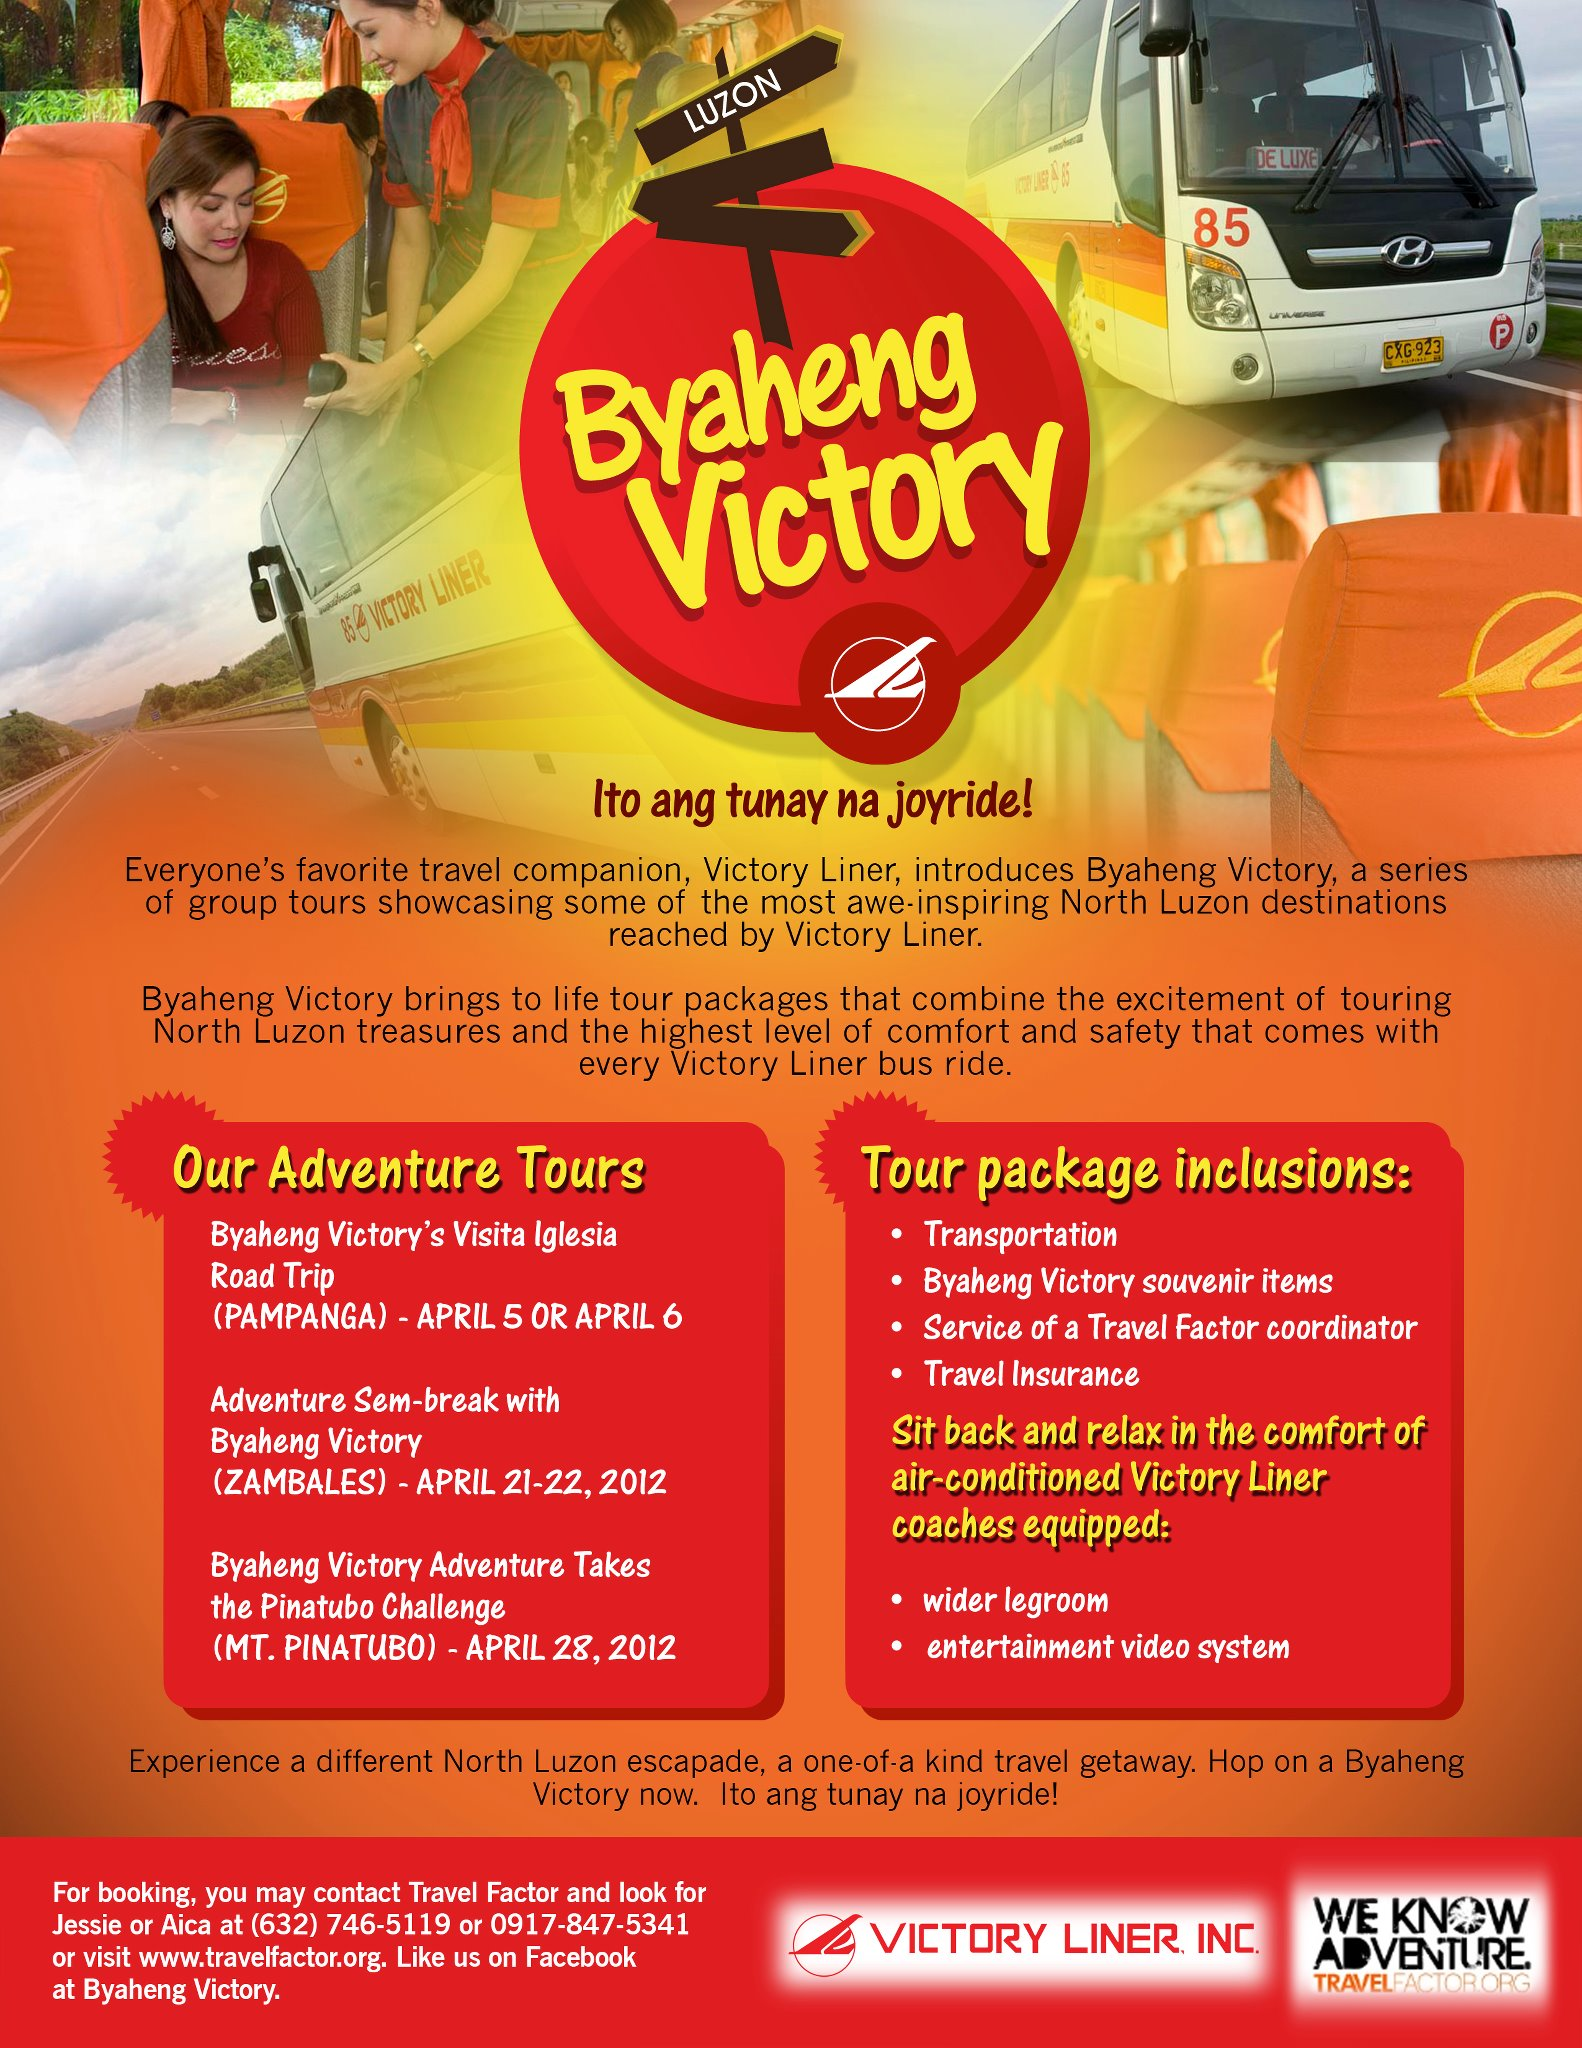 Byaheng Victory Group Tours